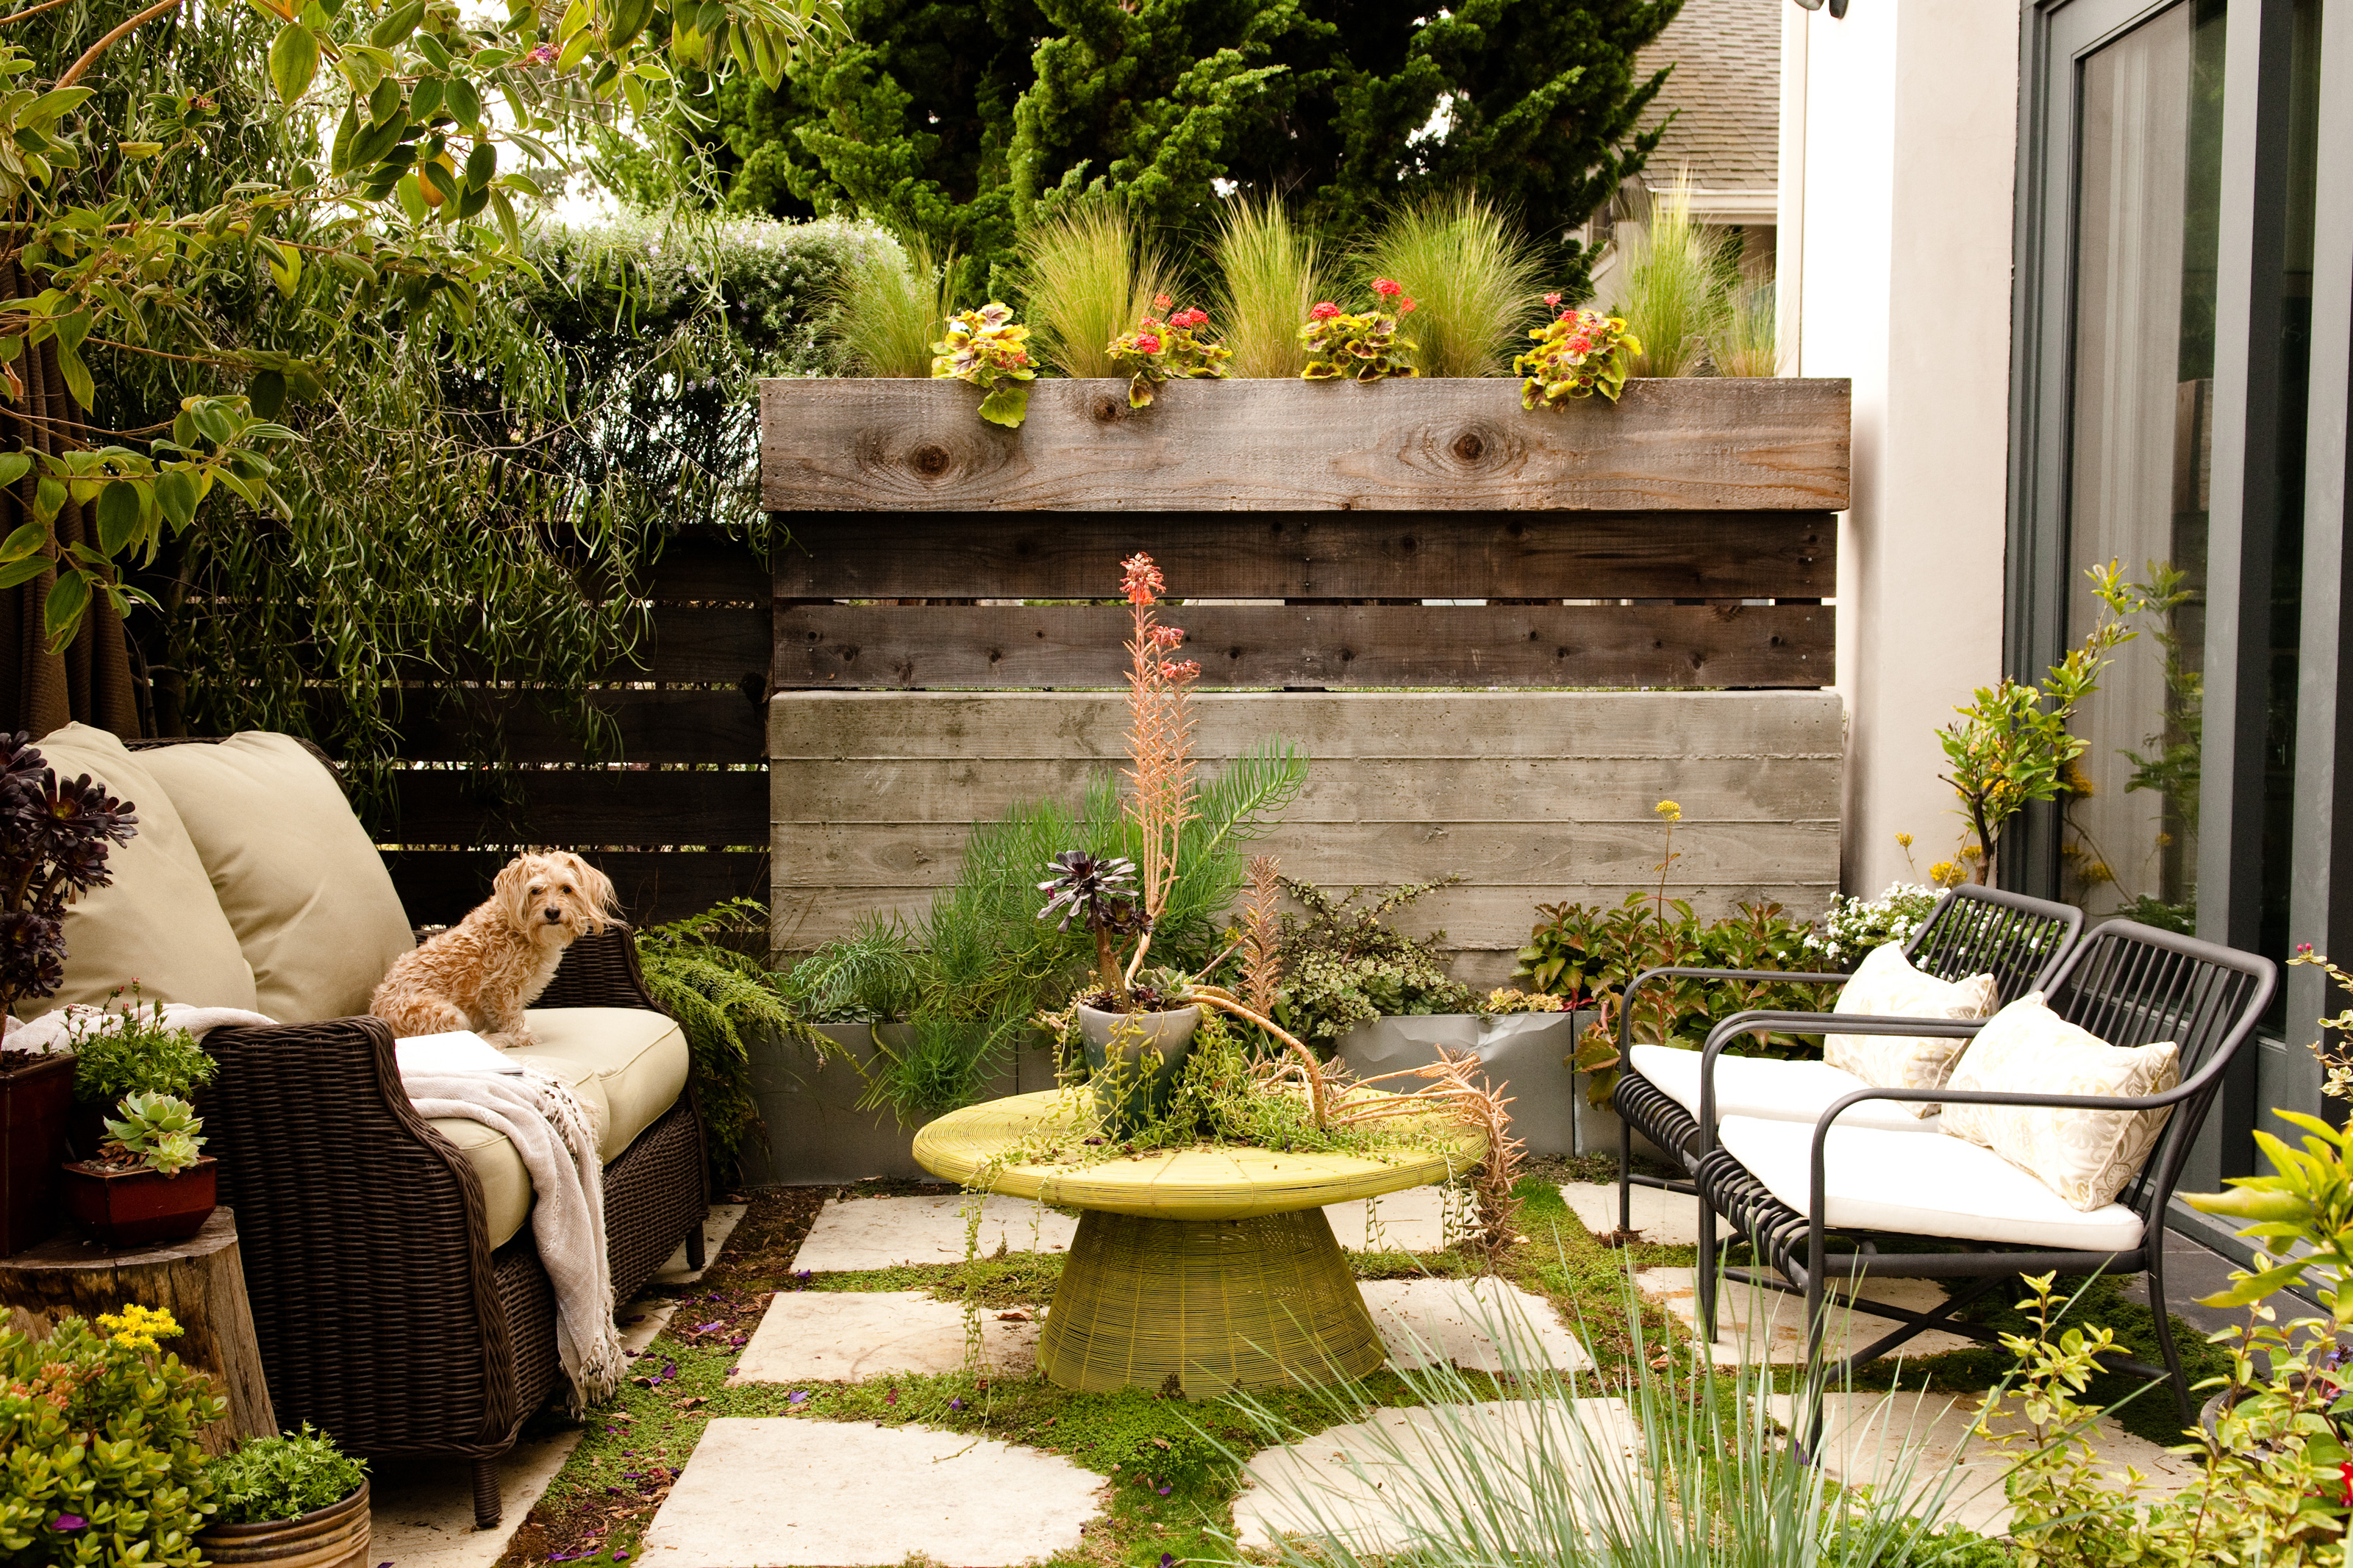 Small Backyard Ideas How To Make A Small Space Look Bigger within Backyard House Ideas